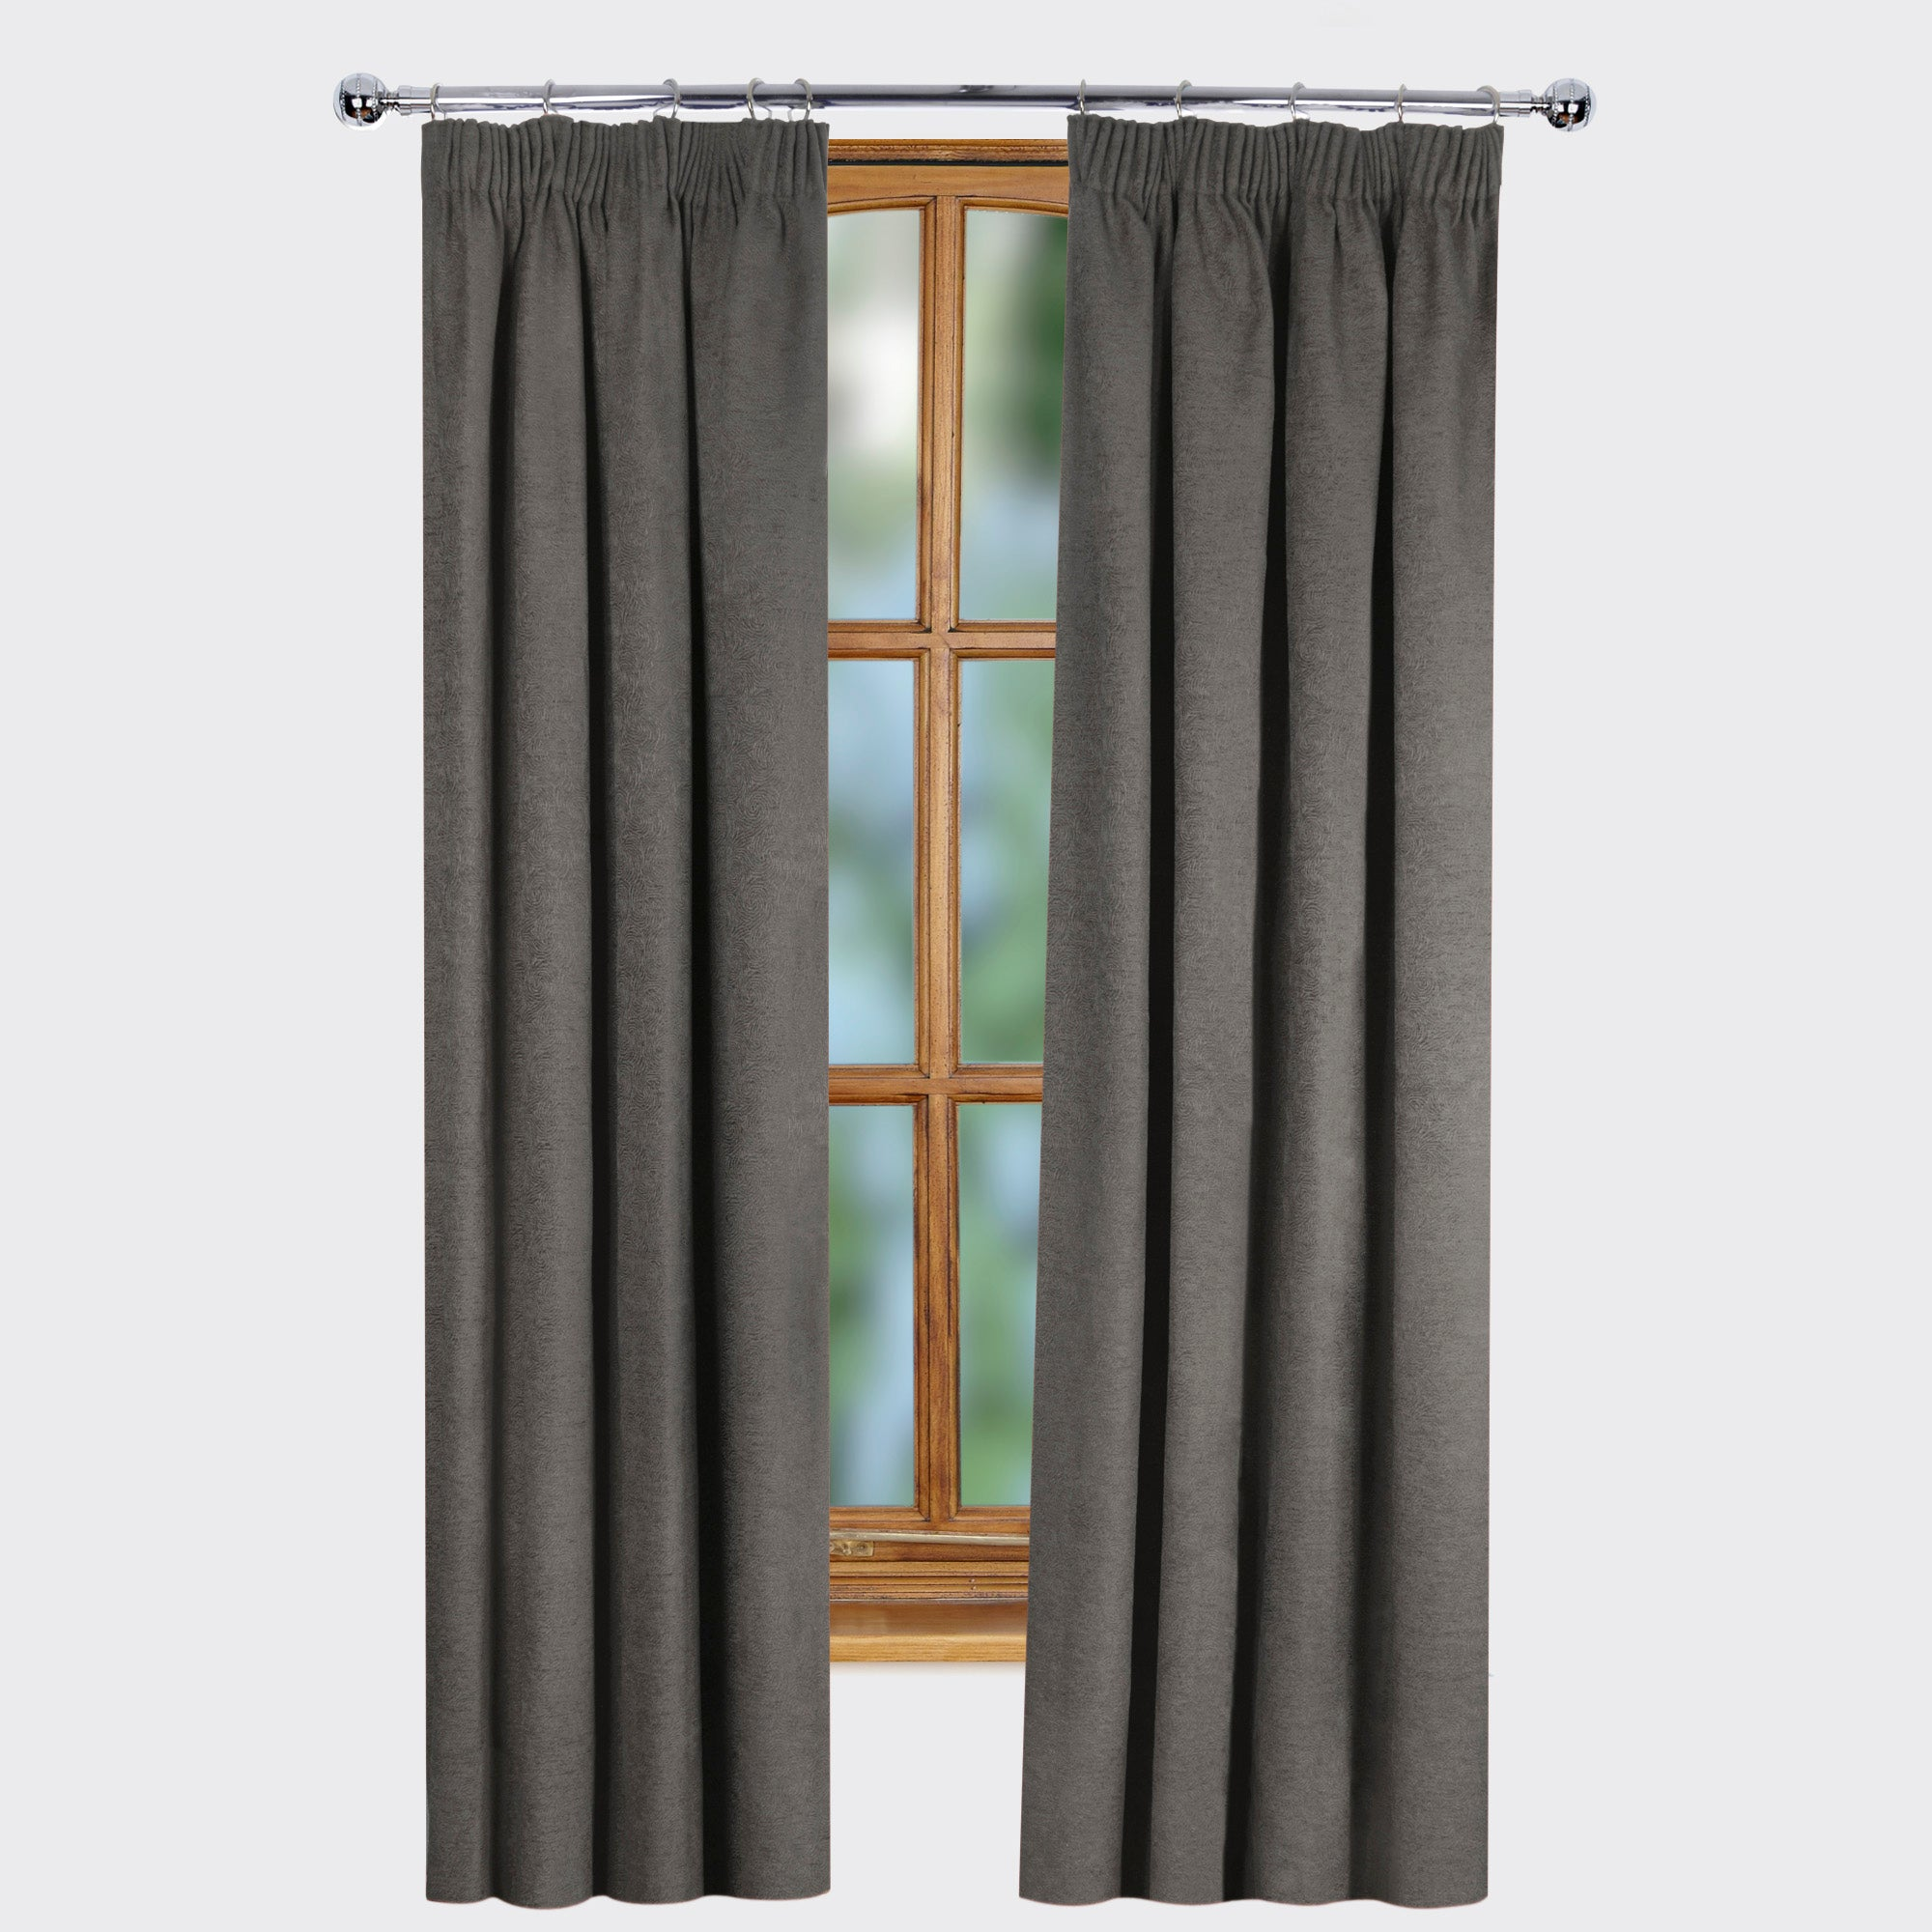 Slate Ontario Thermal Pencil Pleat Curtains